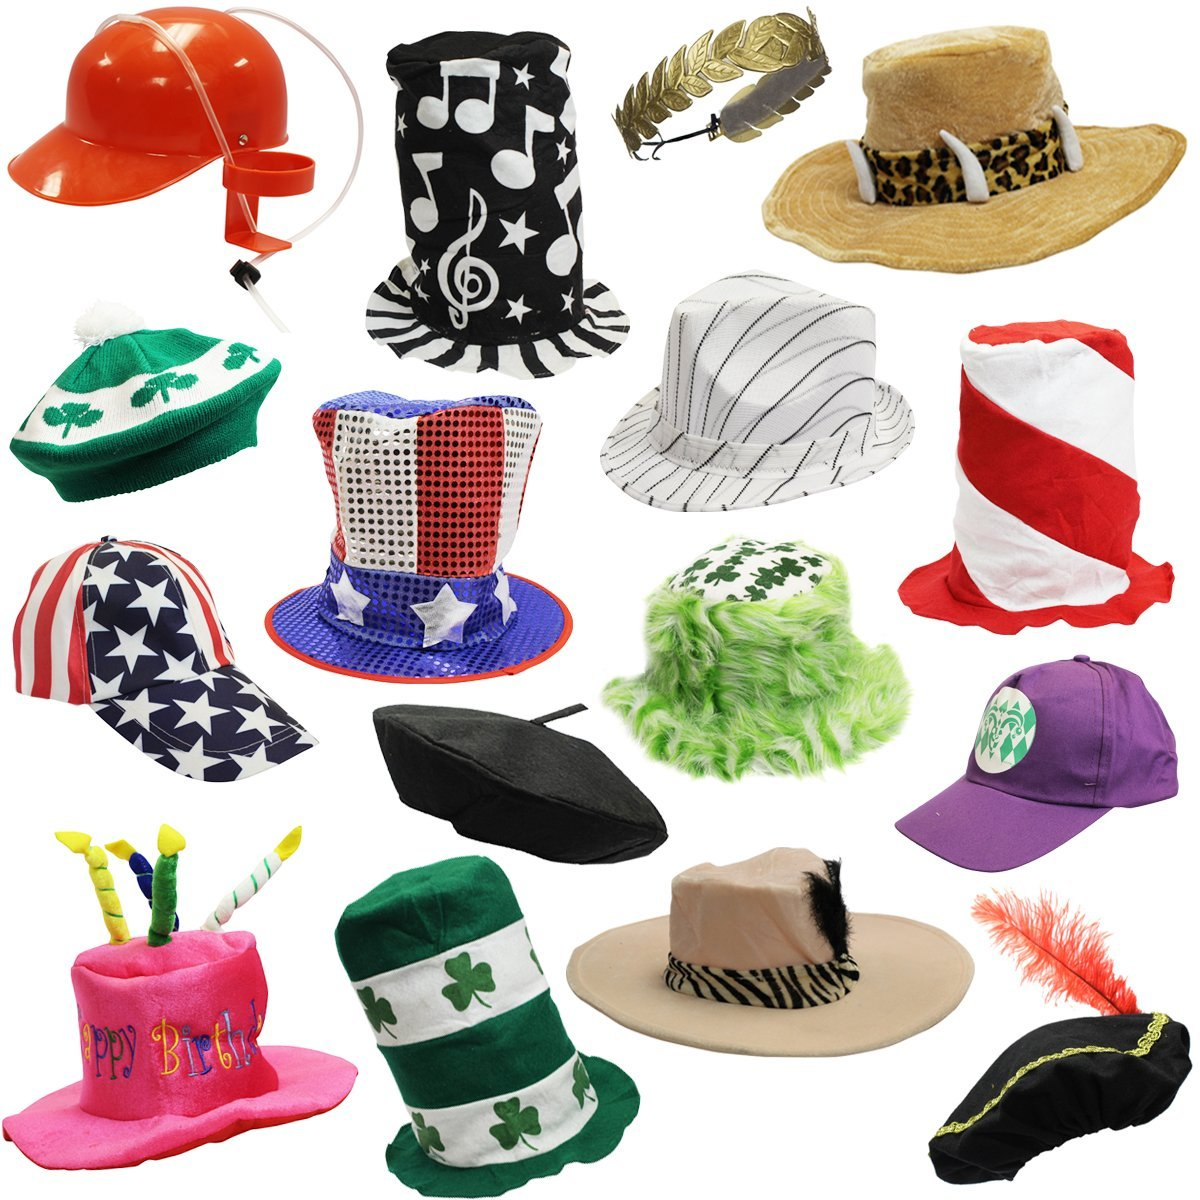 6 assorted dress up costume party hats by funny party hats 6 adult costume